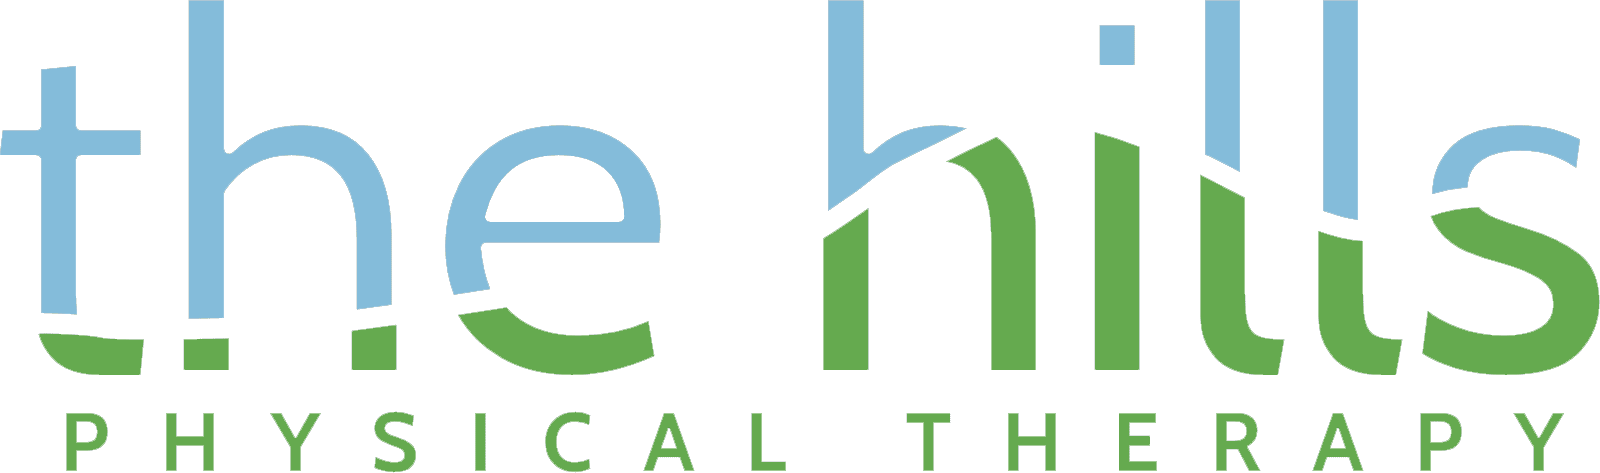 Physical Therapy in Litchfield